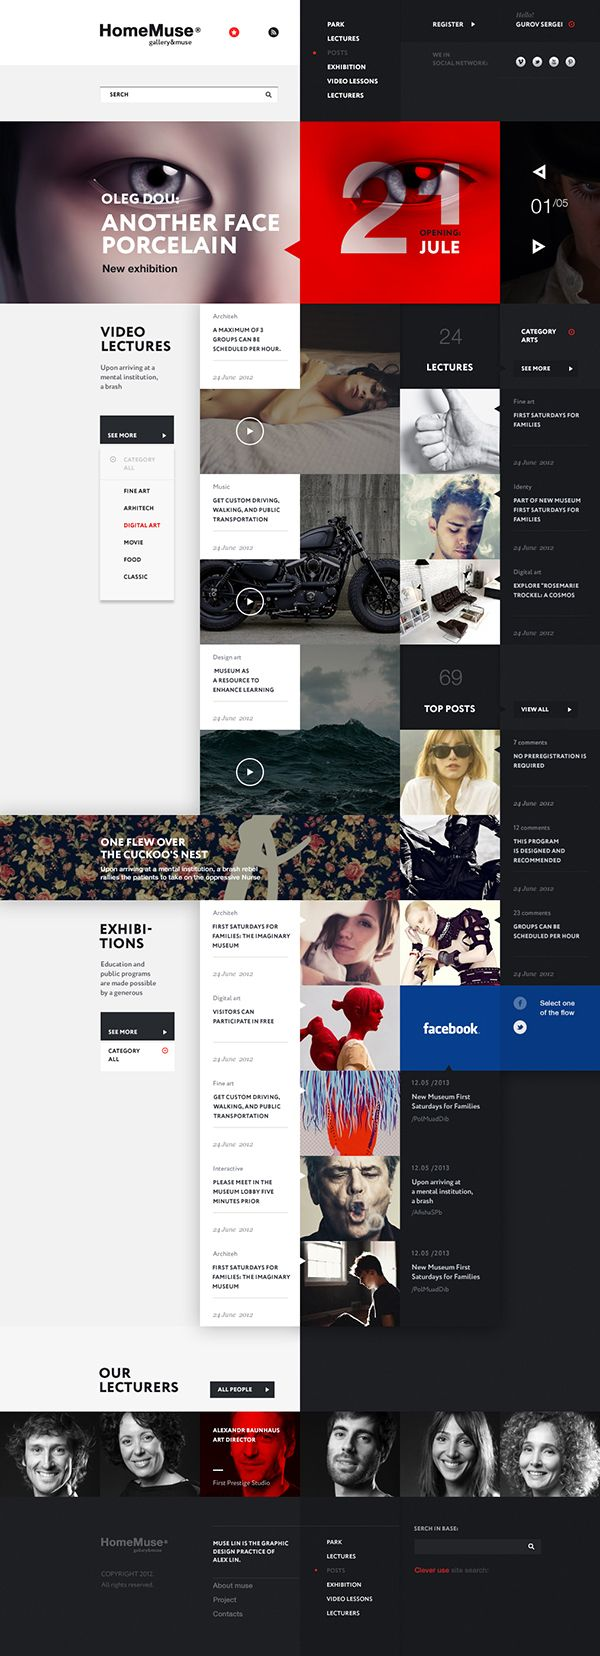 Grid based Website Design - HomeMuse Gallery by Sergei Gurov, via Behance